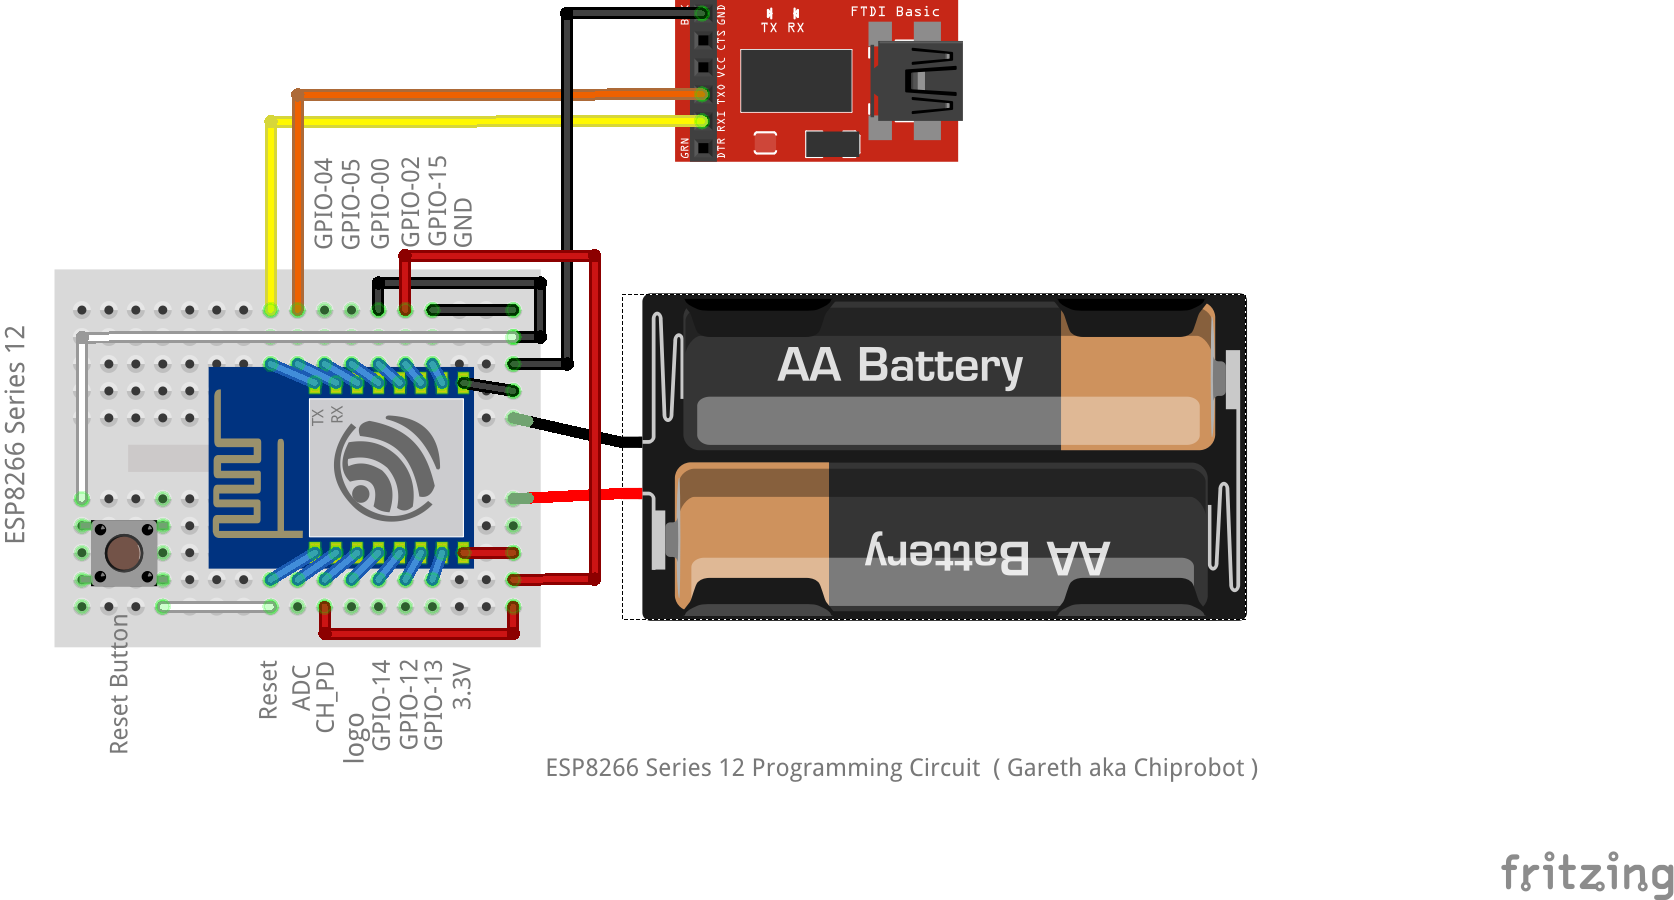 To run programs in normal mode (i.e. from powerup) the wires on pins GPIO-0  , GPIO-2 & GPIO-15 must be disconnected (Run mode).